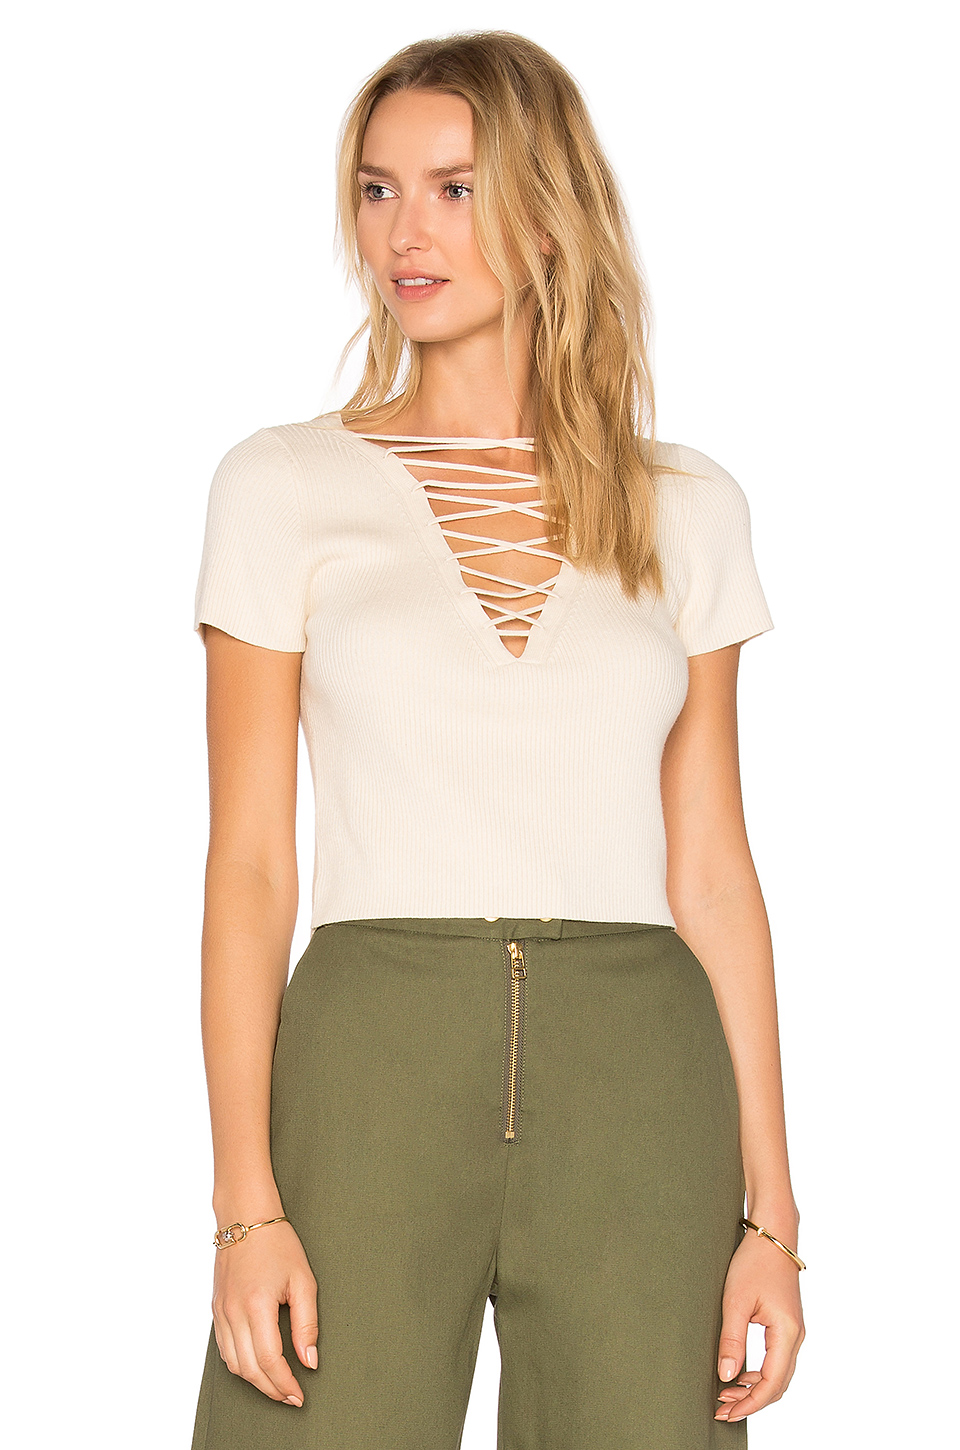 Alexander Wang T Cotton Cashmere Lace Up Short Sleeve Pullover In Neutrals. In Almond